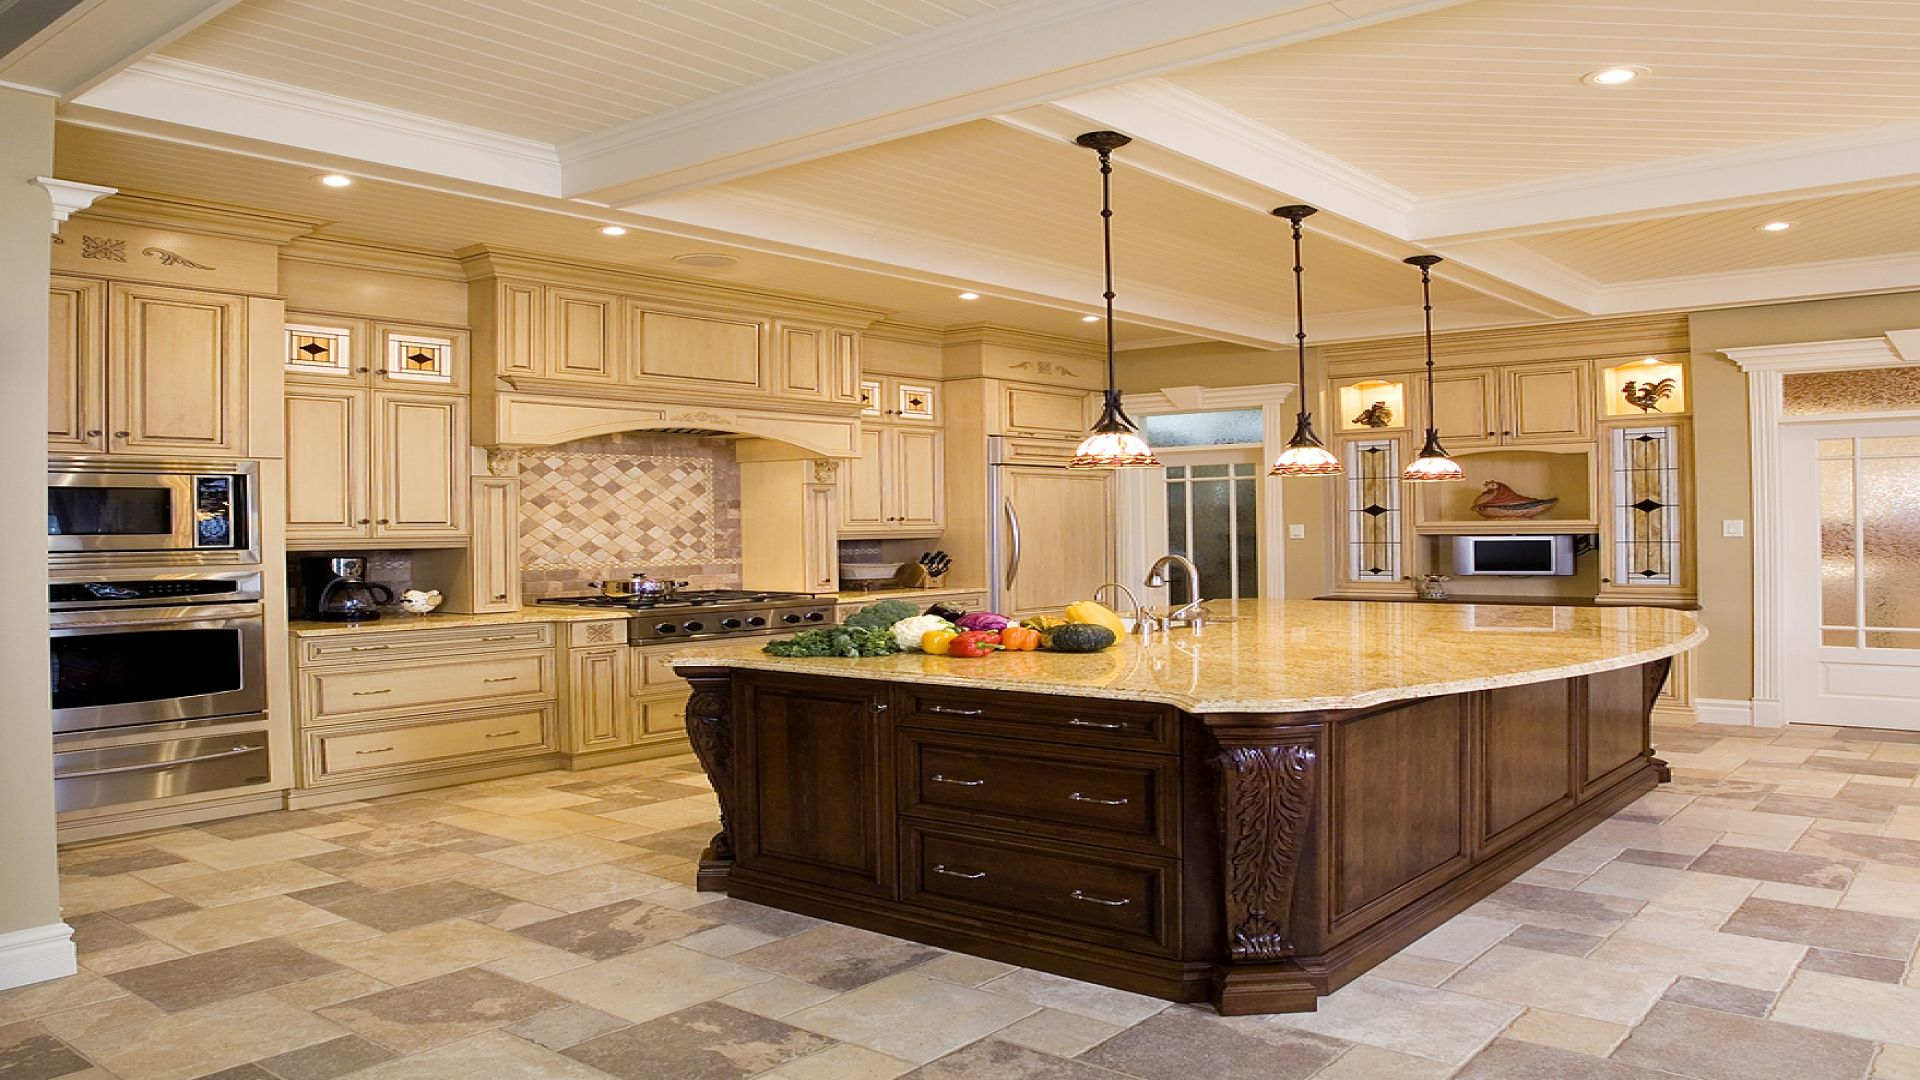 Remodeling For Kitchens Kitchen Remodel Ideas Photos Kitchen Cabinet Remodeling Ideas